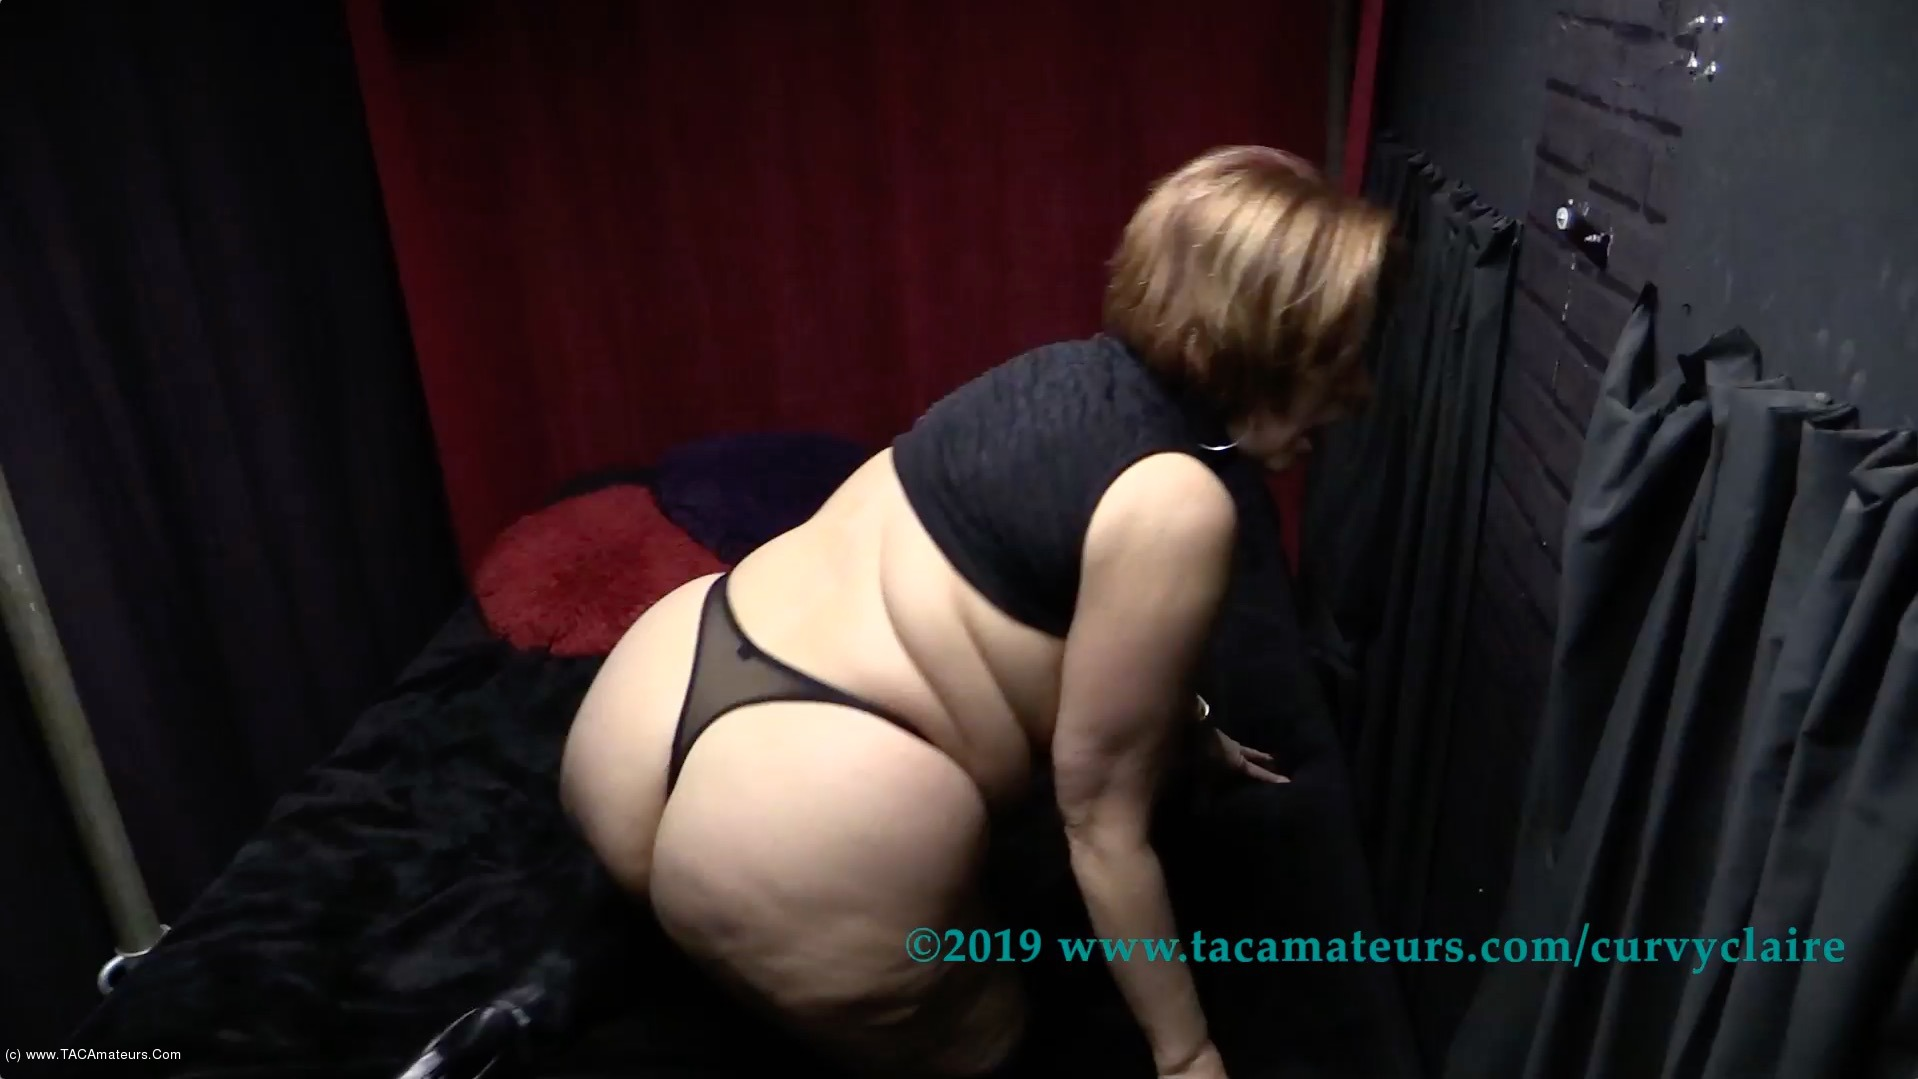 CurvyClaire - Thighboot Dildo Fun Pt1 scene 2